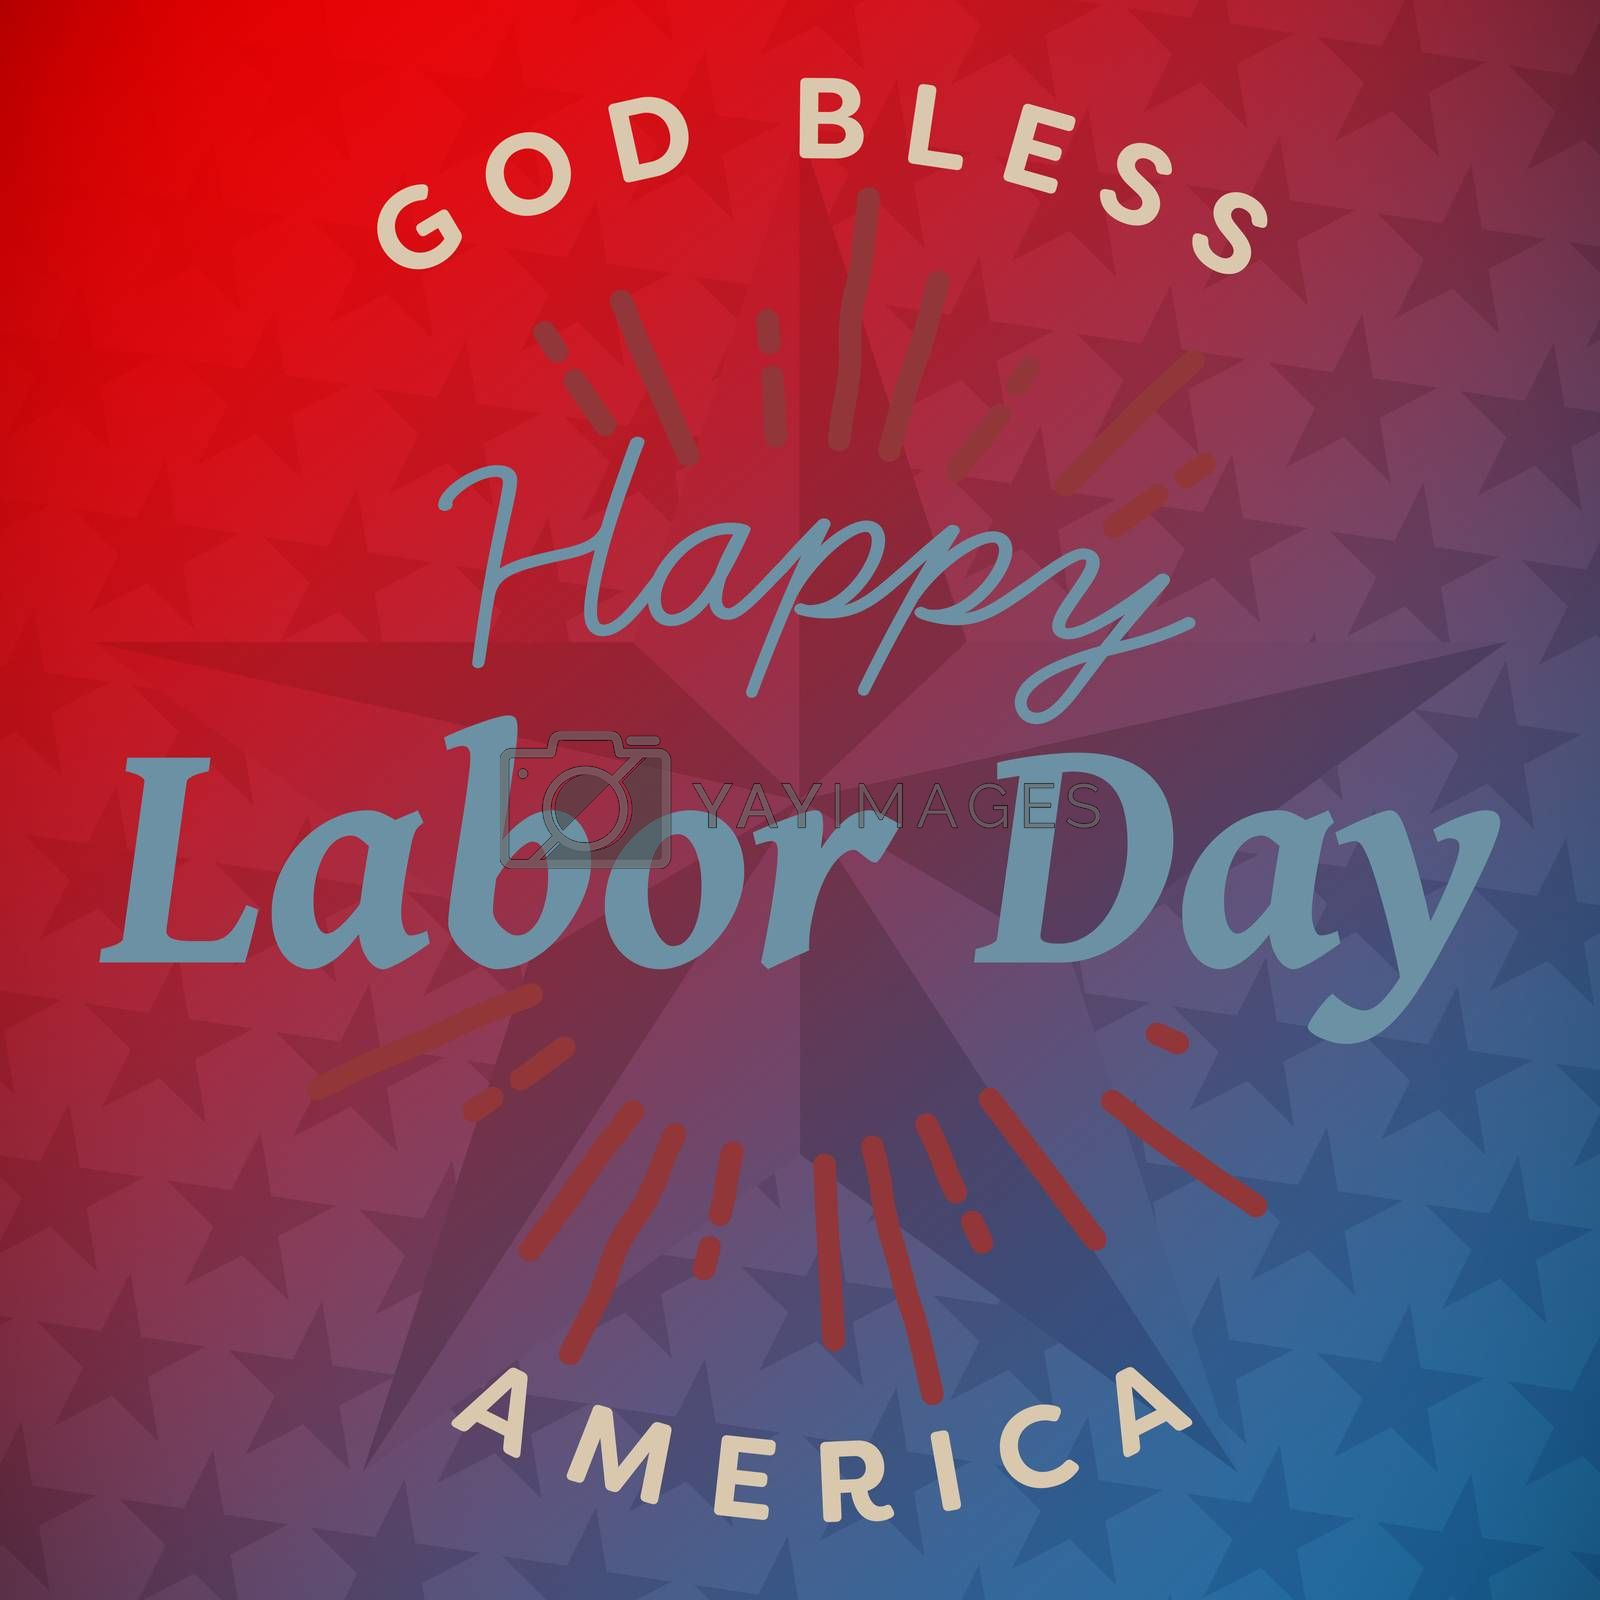 Composite image of digital composite image of happy labor day and god bless america text by Wavebreakmedia